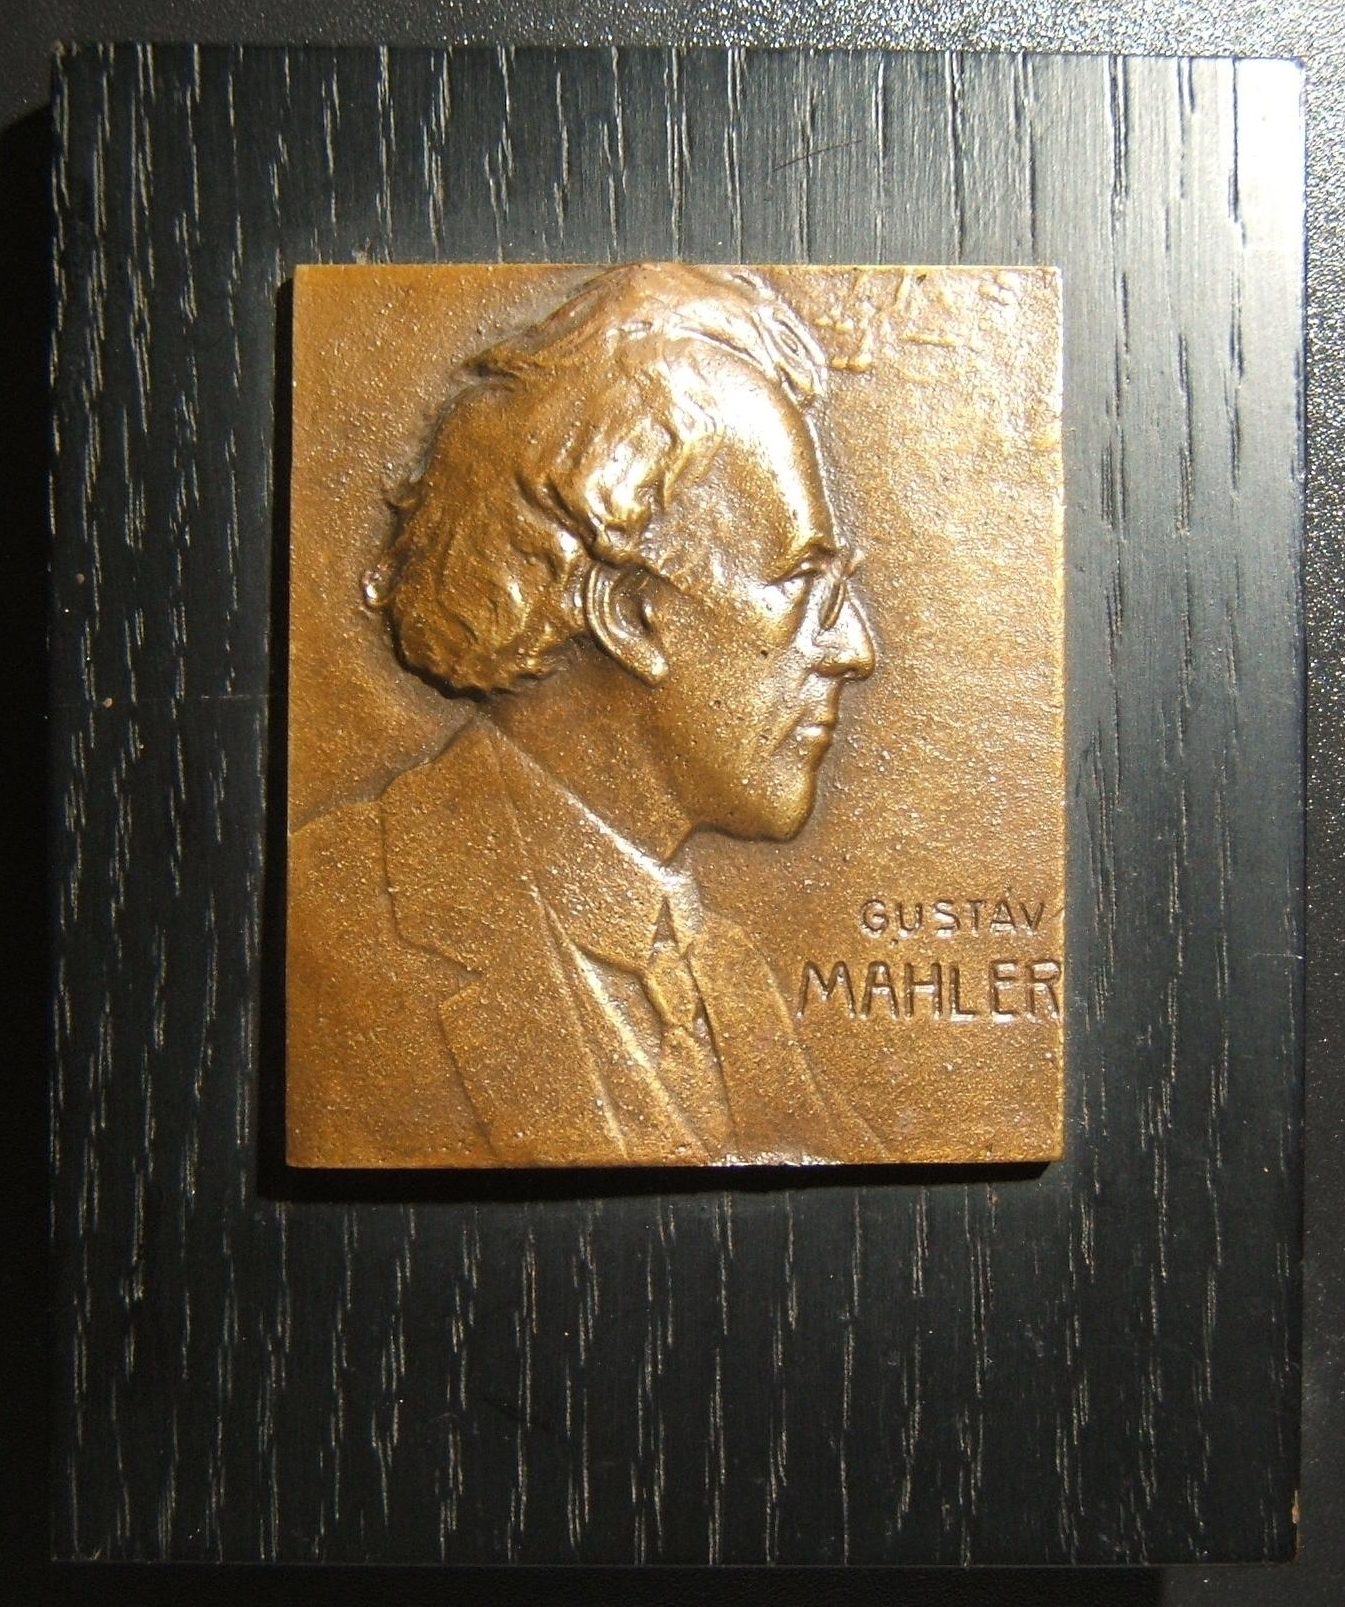 Austria: Gustav Mahler cast bronze plaque by Franz Stiasny, ND (circa. 1930's), mounted on wooden display; size (plaque only): 54.5 x 63mm; weight (whole unit) 173.3g. Right-facing